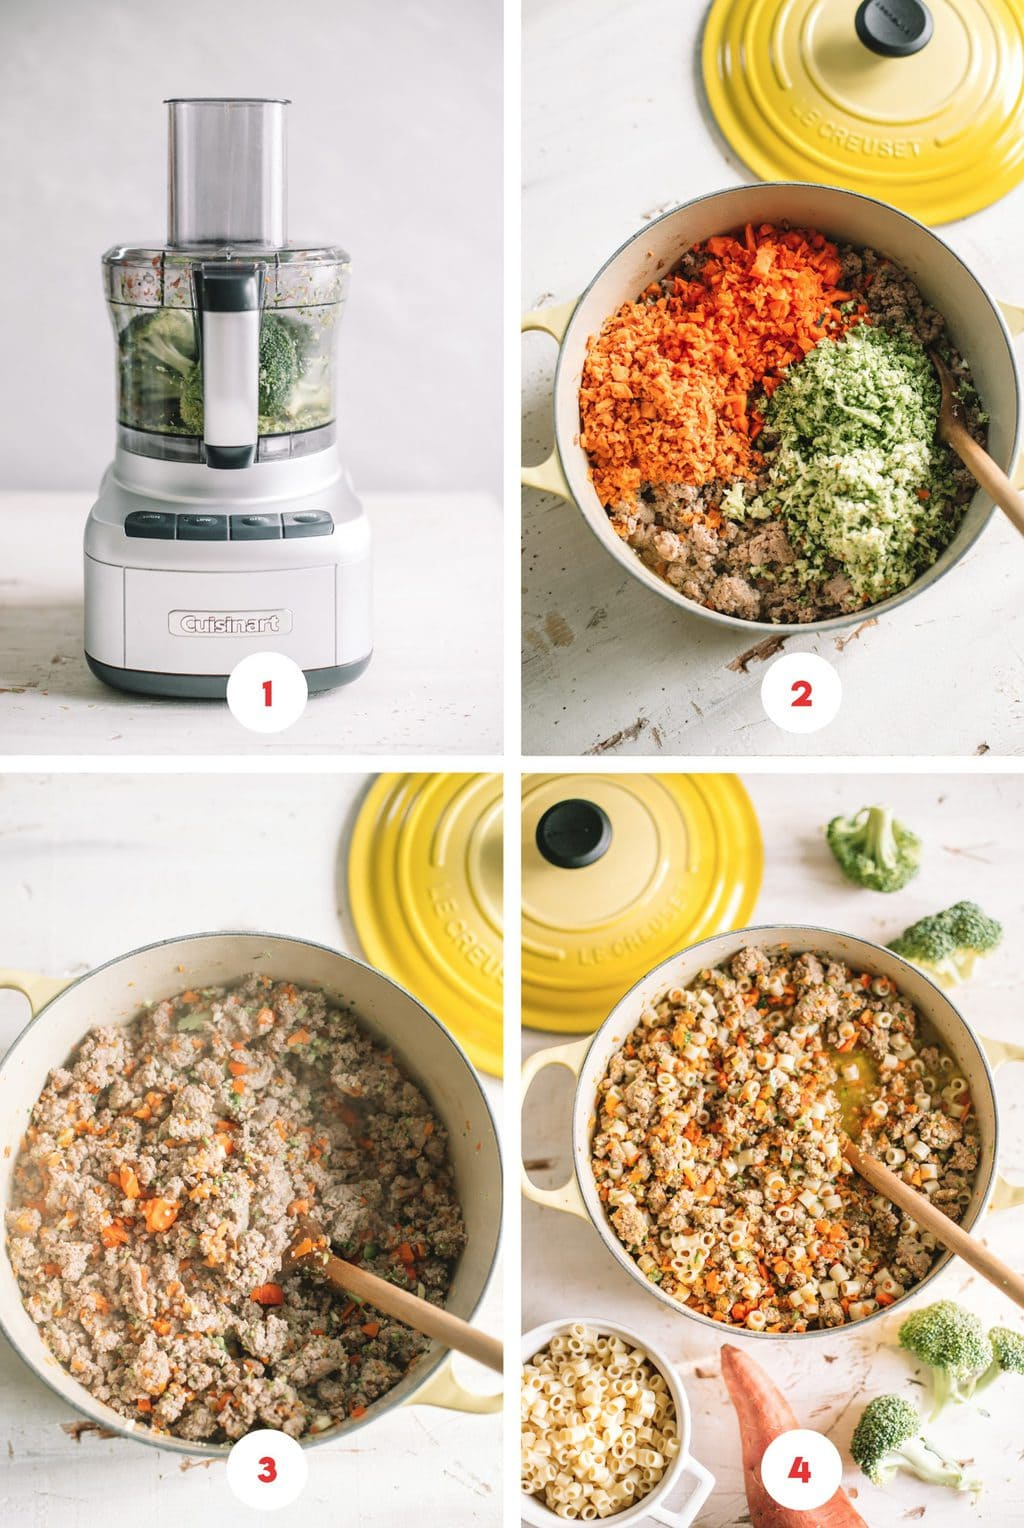 Step by step process on how to make a homemade dog food recipe.